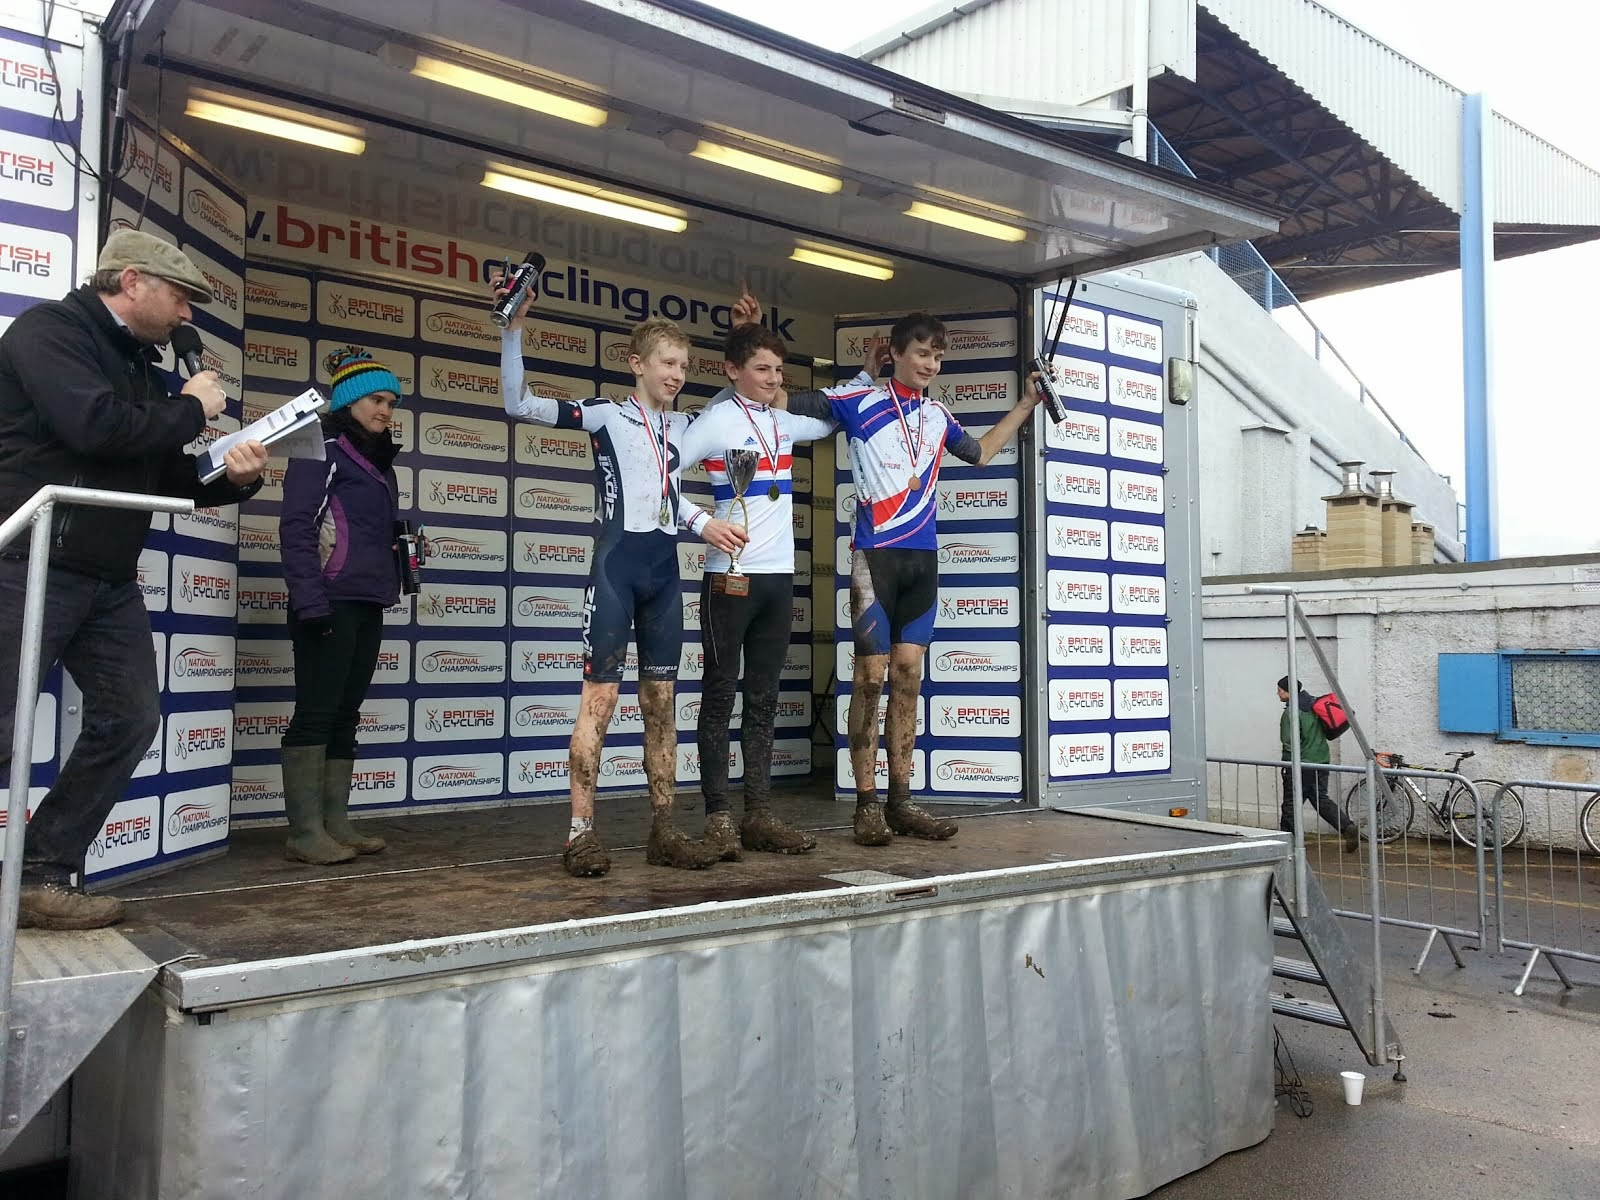 EBCC's Euan Cameron National Champion